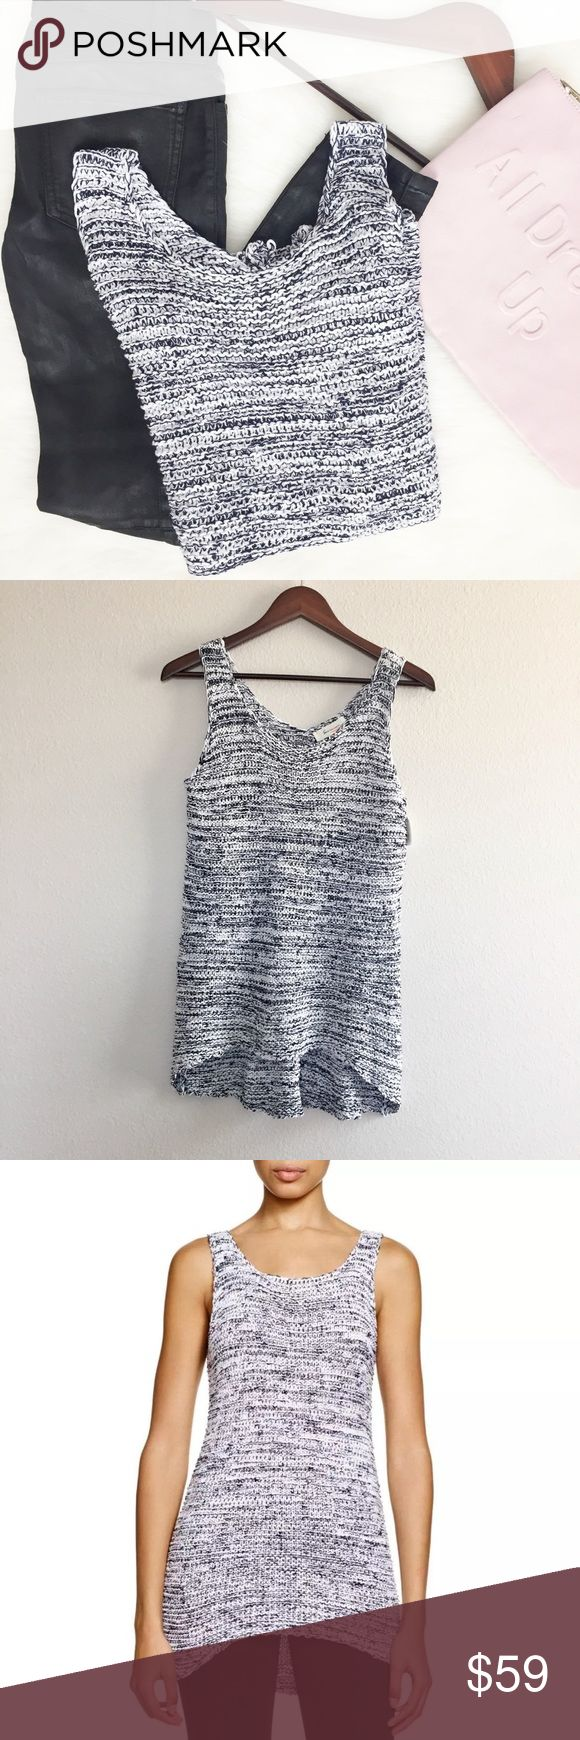 """Two by Vince Camuto Morning Sky Sweater Tank •Two by Vince Camuto• Morning Sky White High Low Tank    • Wide {Pit to Pit}: 18""""  • Long: 26""""  • Colors: Blue & White   • Size: Medium   • NWT  Fabrics:   • 70% Cotton   • 17% Nylon   • 13% Acrylic    ✏️Measurements are approximate  💰Bundle Discounts Available 🏷Reasonable Offers Welcomed  ❌Sorry No Trades Two by Vince Camuto Tops Tank Tops"""